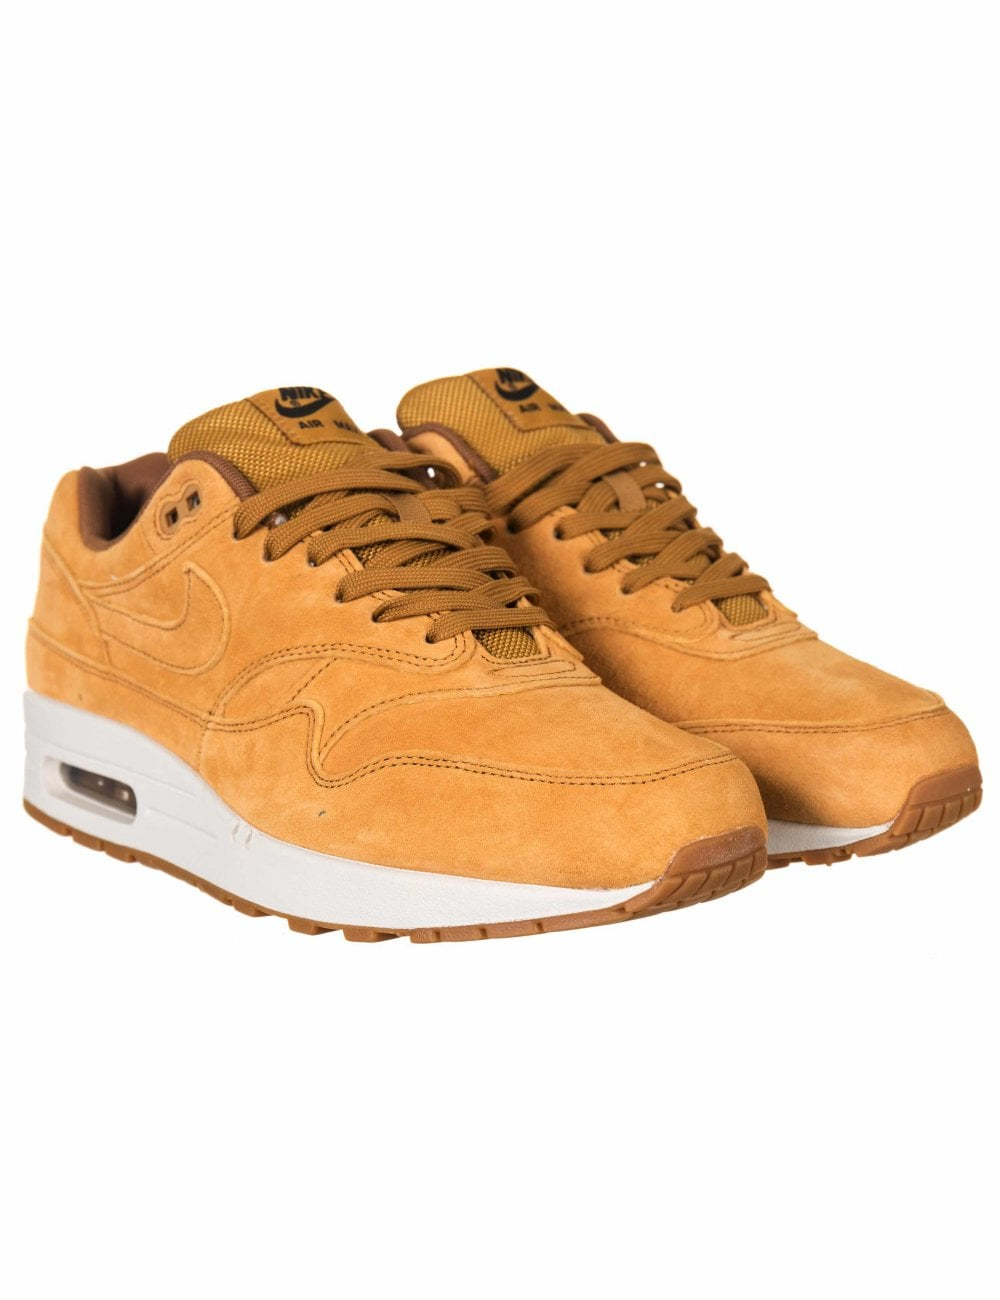 Nike Fall Wheat Pack Buy Now |